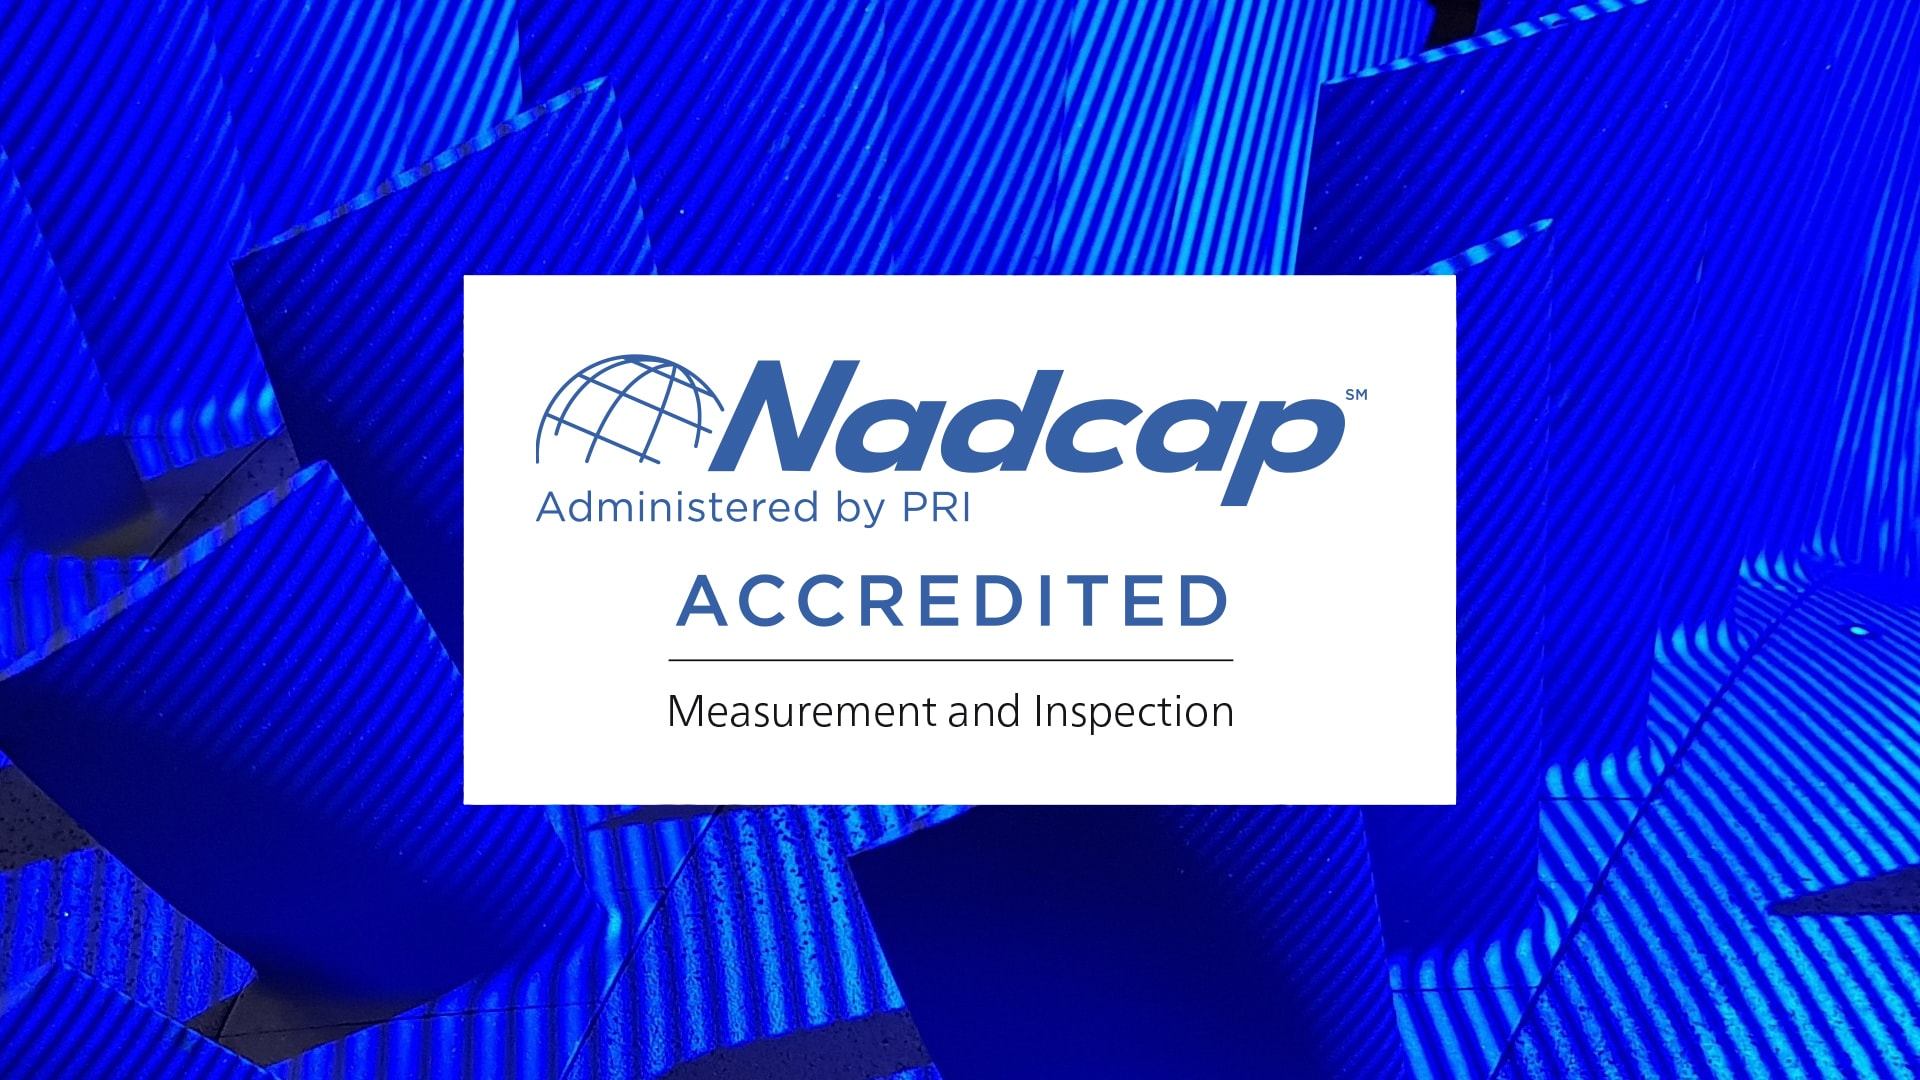 Achieving NADCAP Accreditation